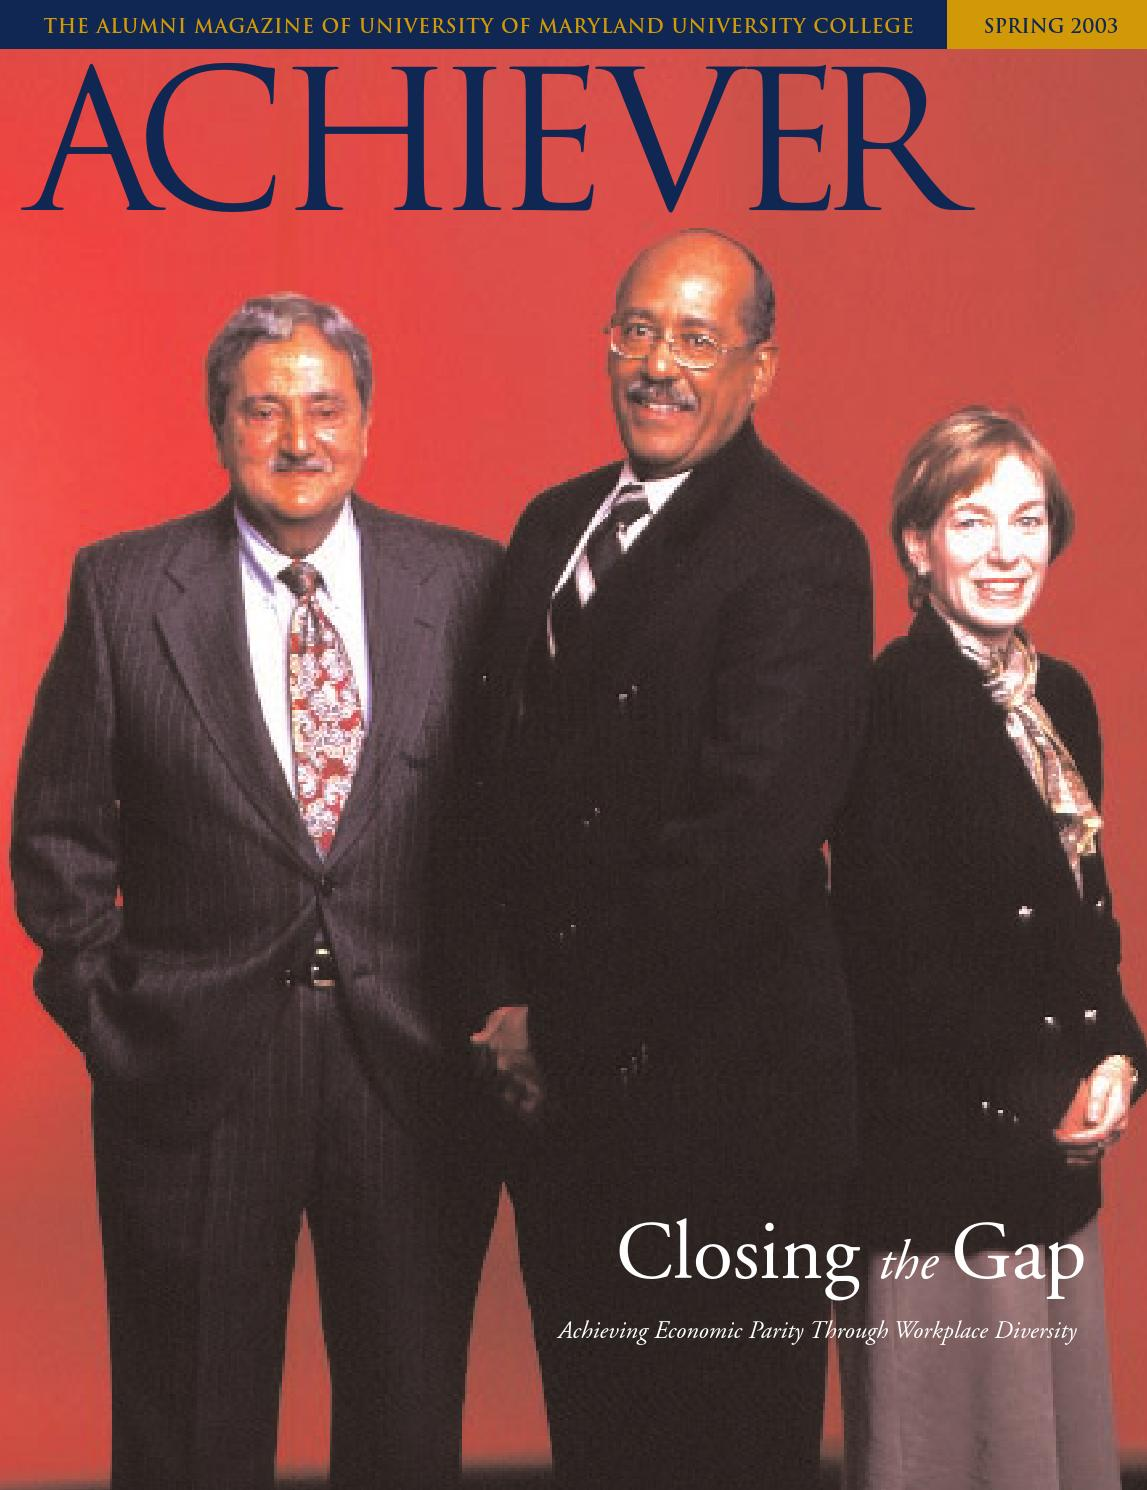 cape eleuthera foundation annual report by sweet olive co issuu umuc achiever magazine spring 2003